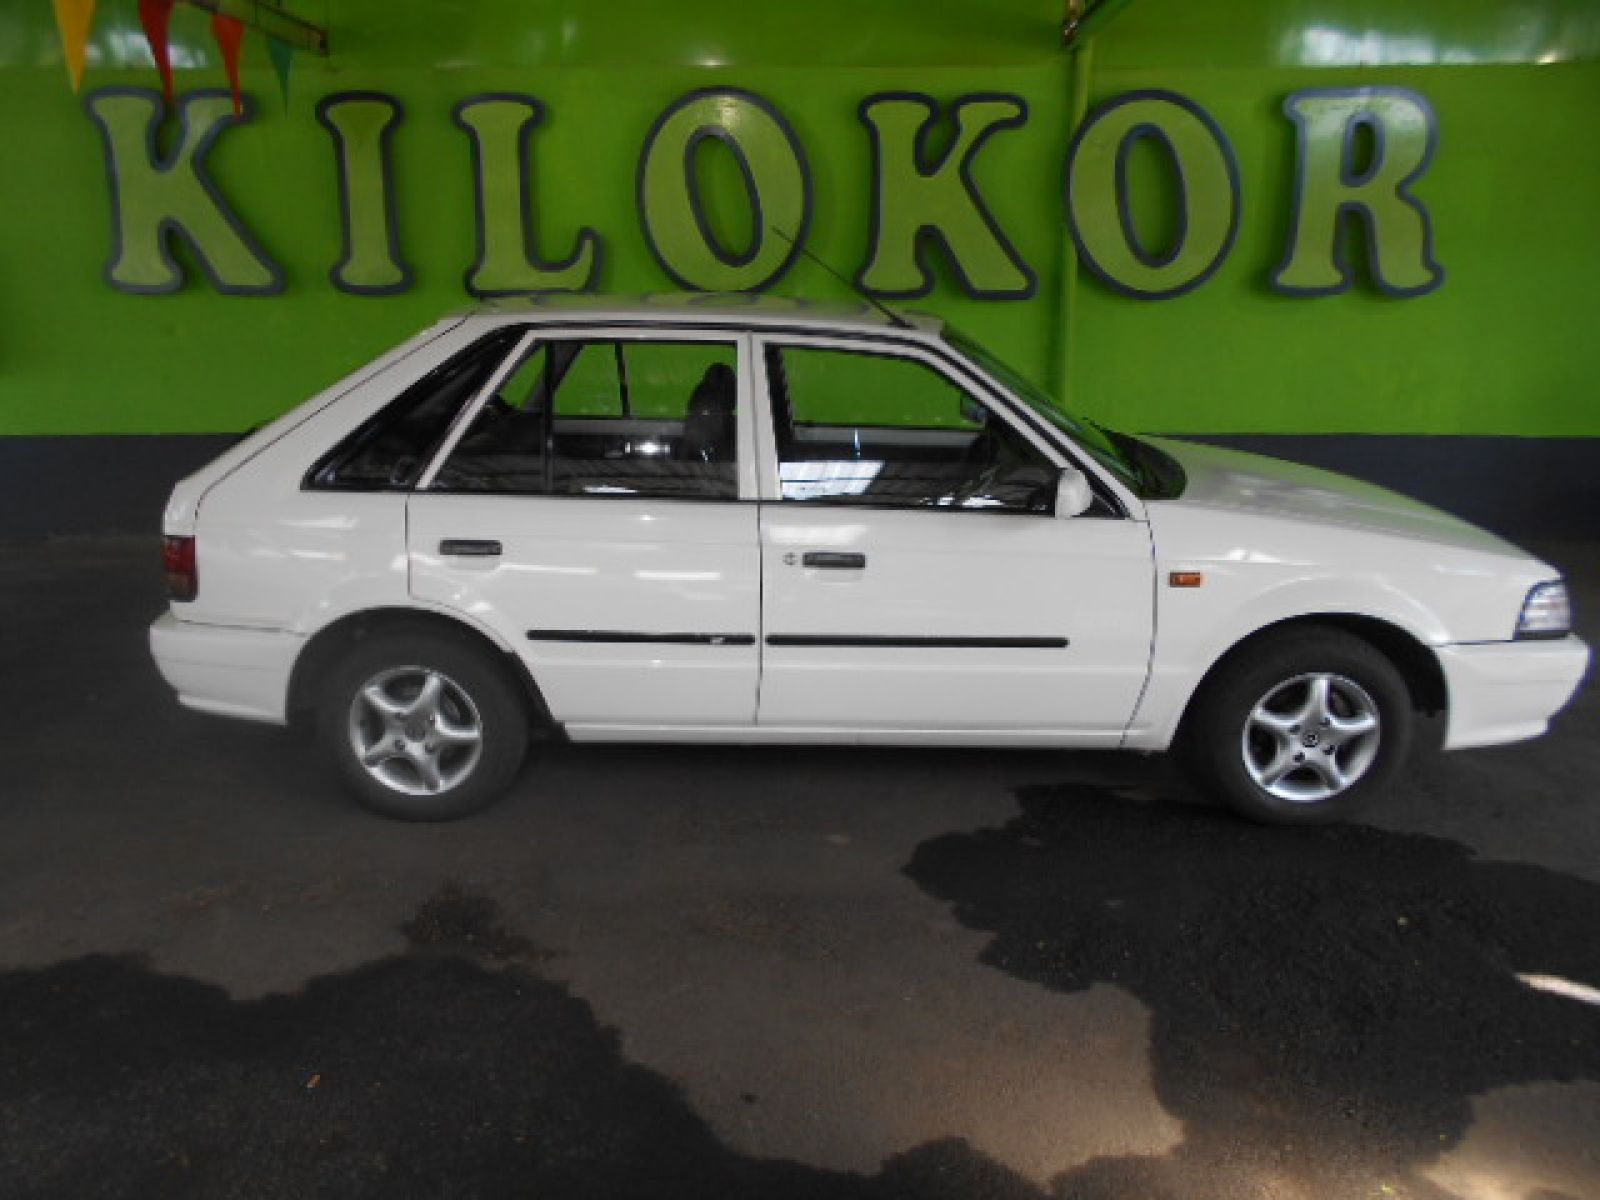 2003 Mazda 323 R 49 990 For Sale Kilokor Motors